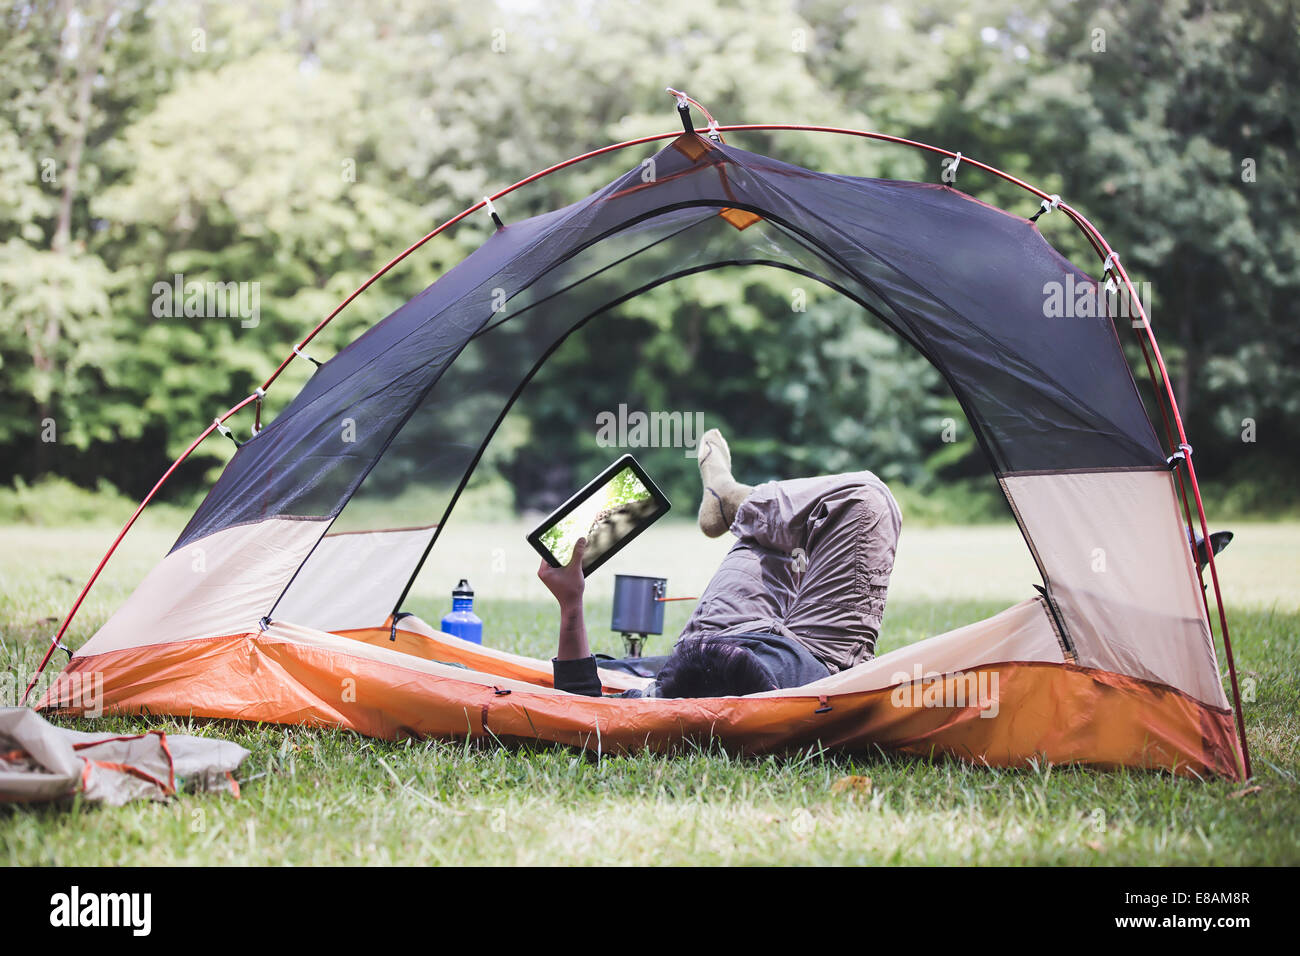 Mature man lying in tent using digital tablet - Stock Image